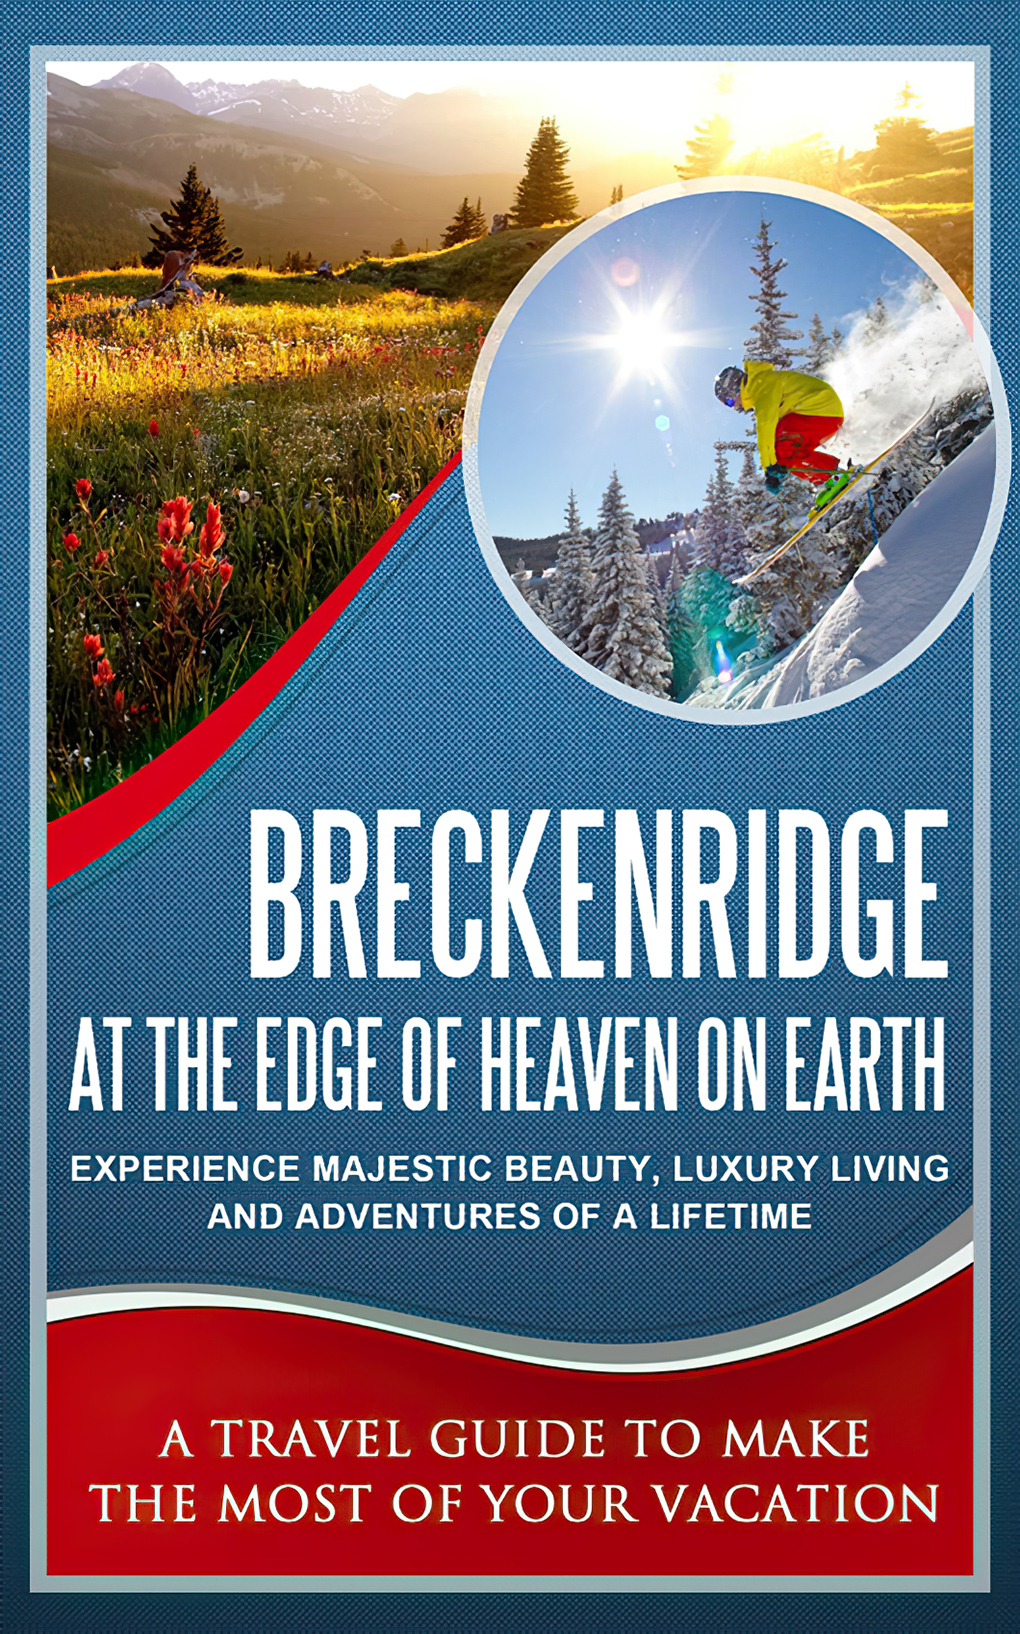 Breckenridge Travel Guide (retina)